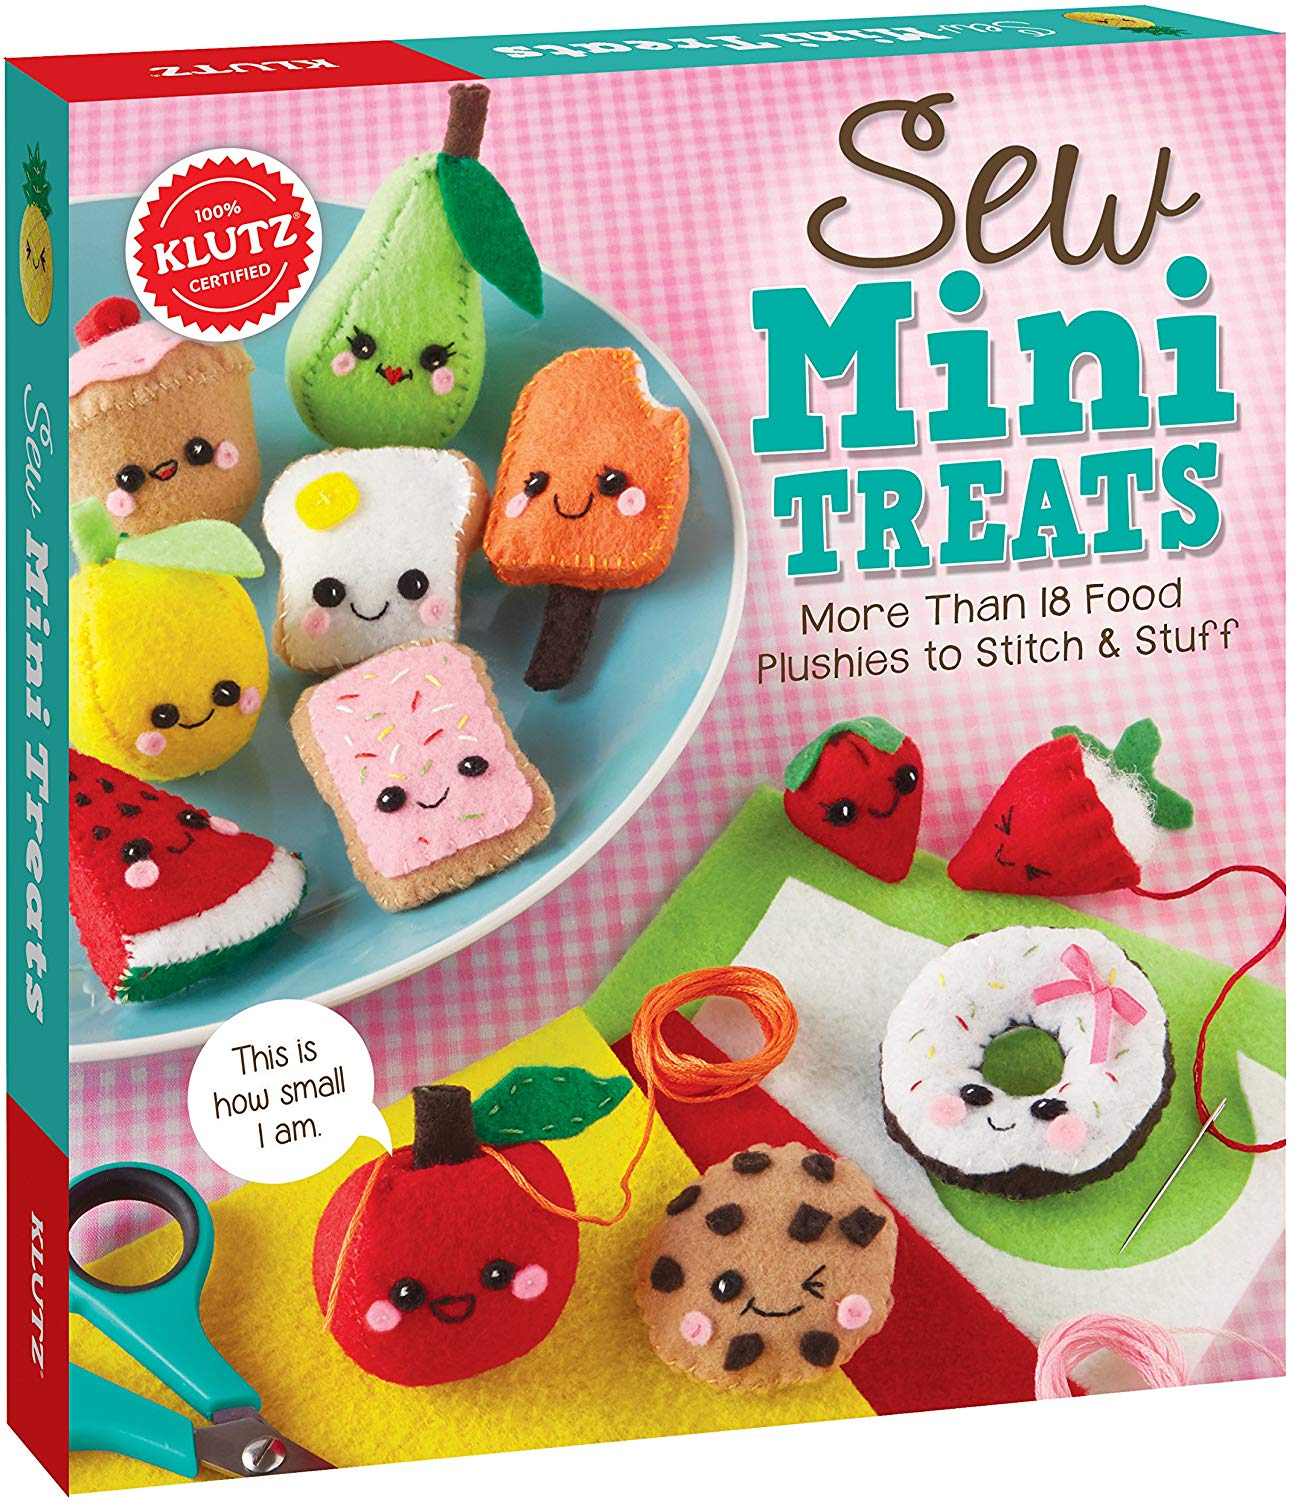 gifts-for-7-year-old-sew-treats